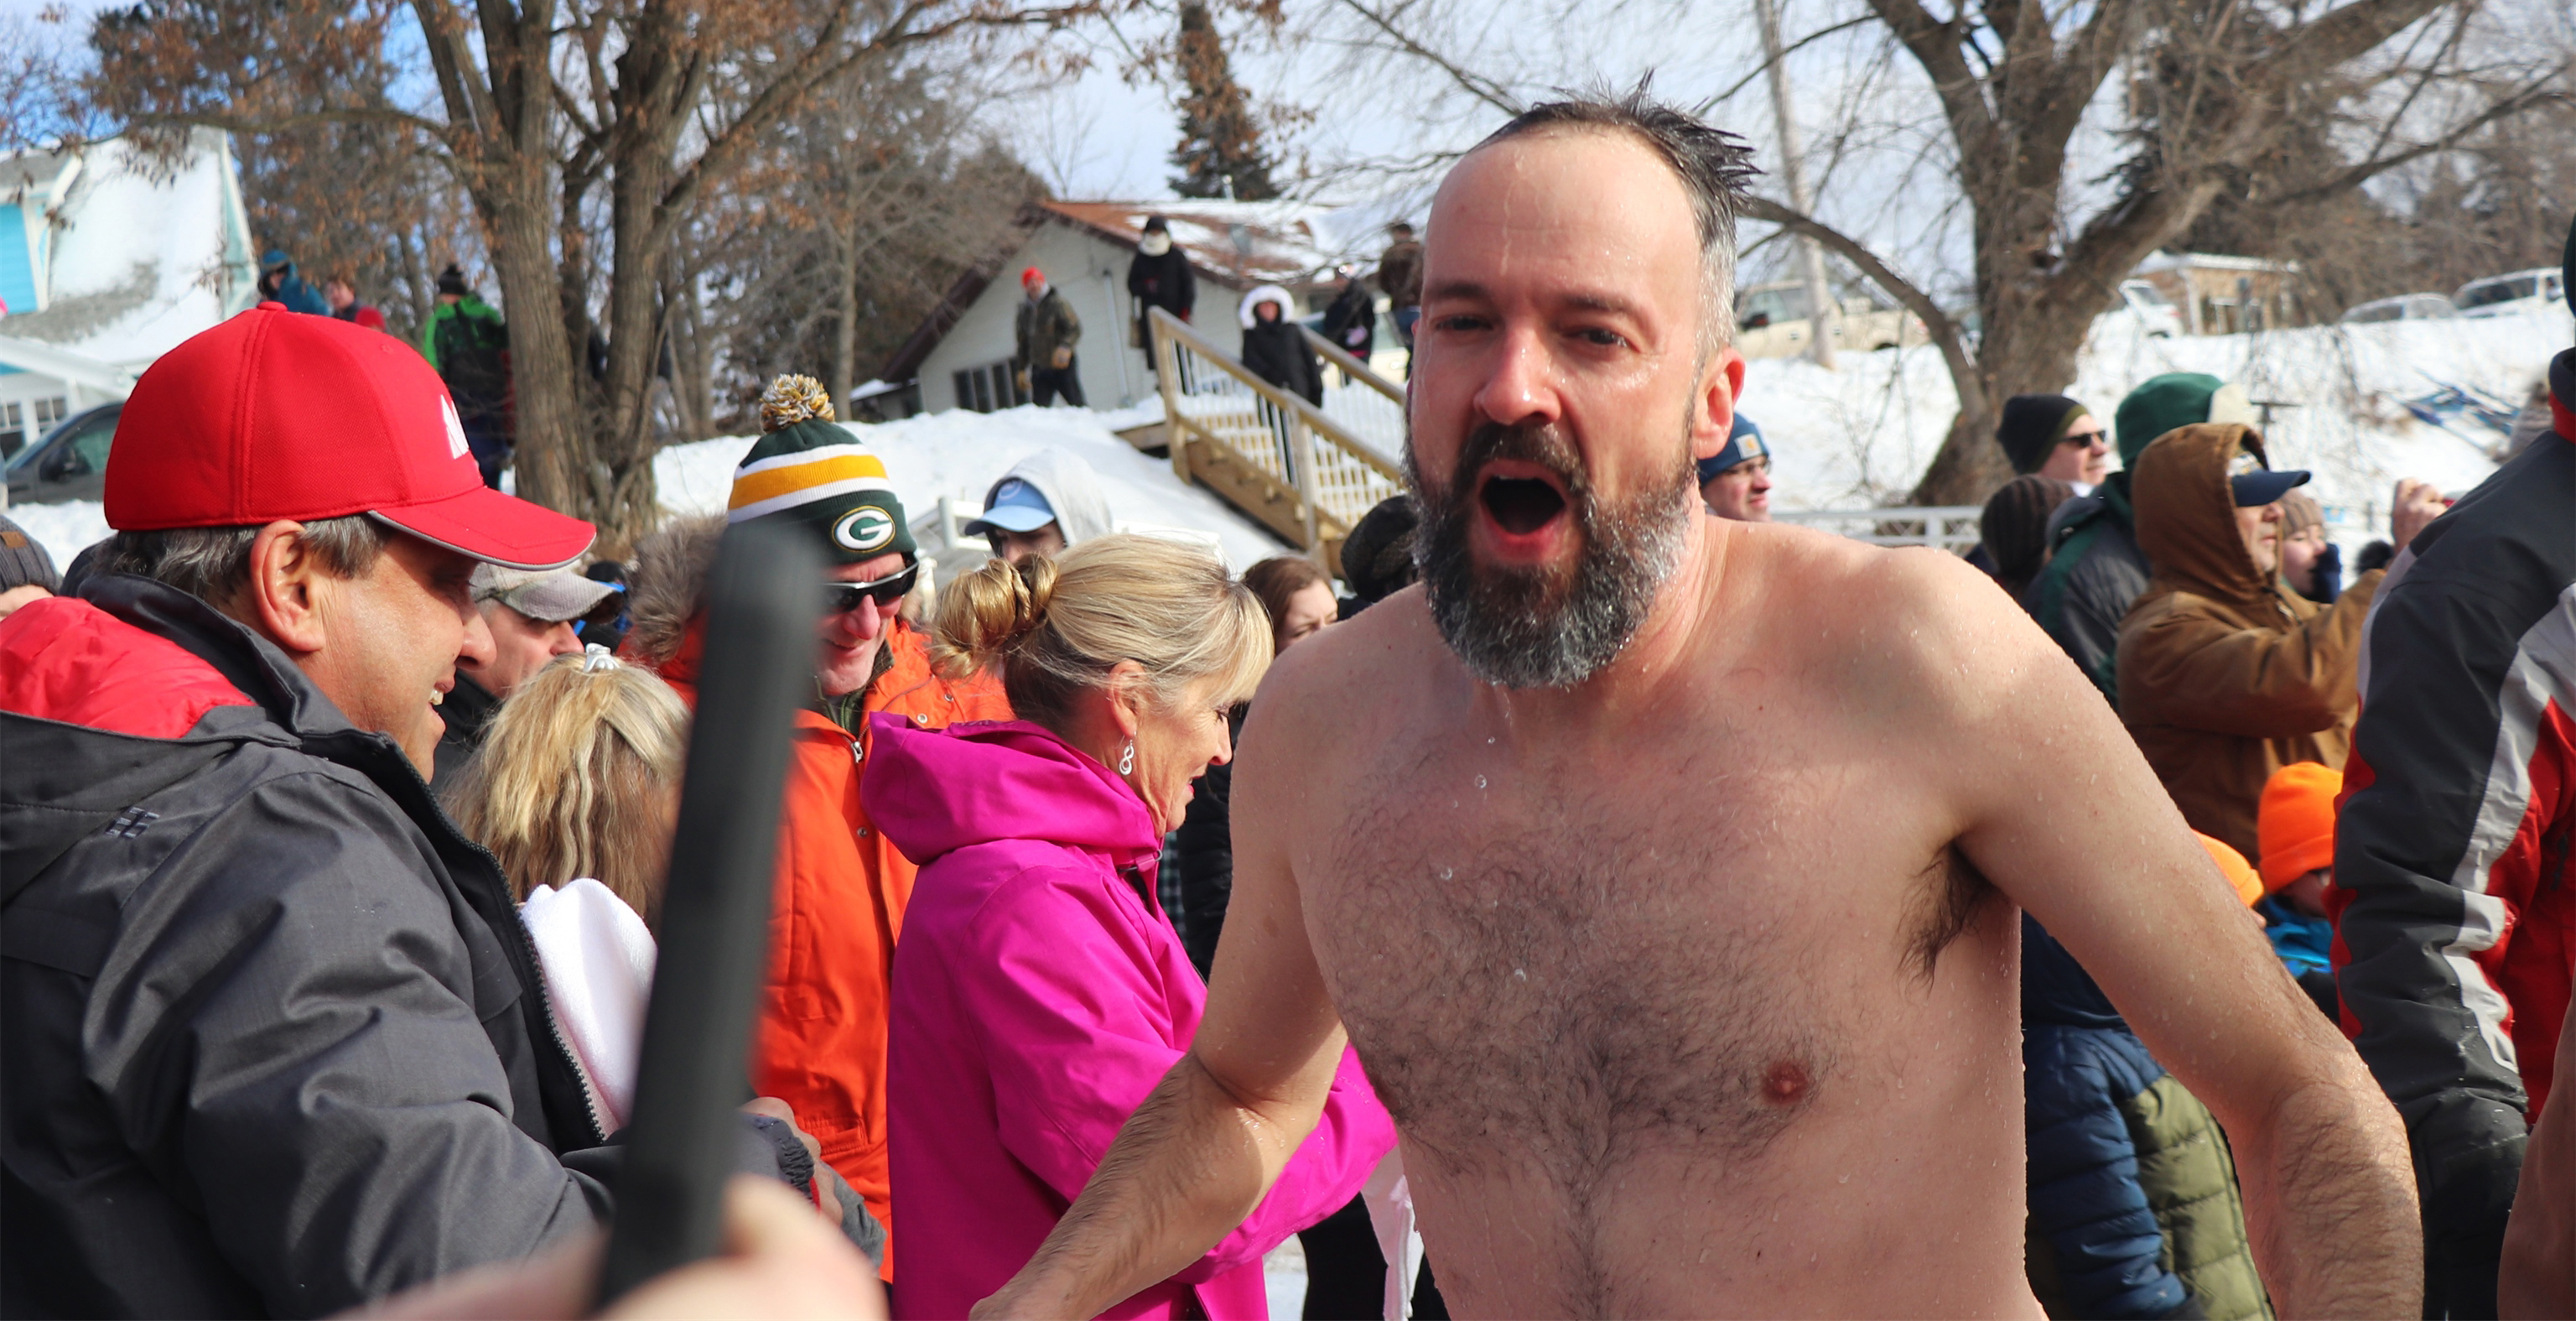 Heading into the Thirsty Whale to warm up after a plunge into Lake Minocqua. Kim Johnson photo